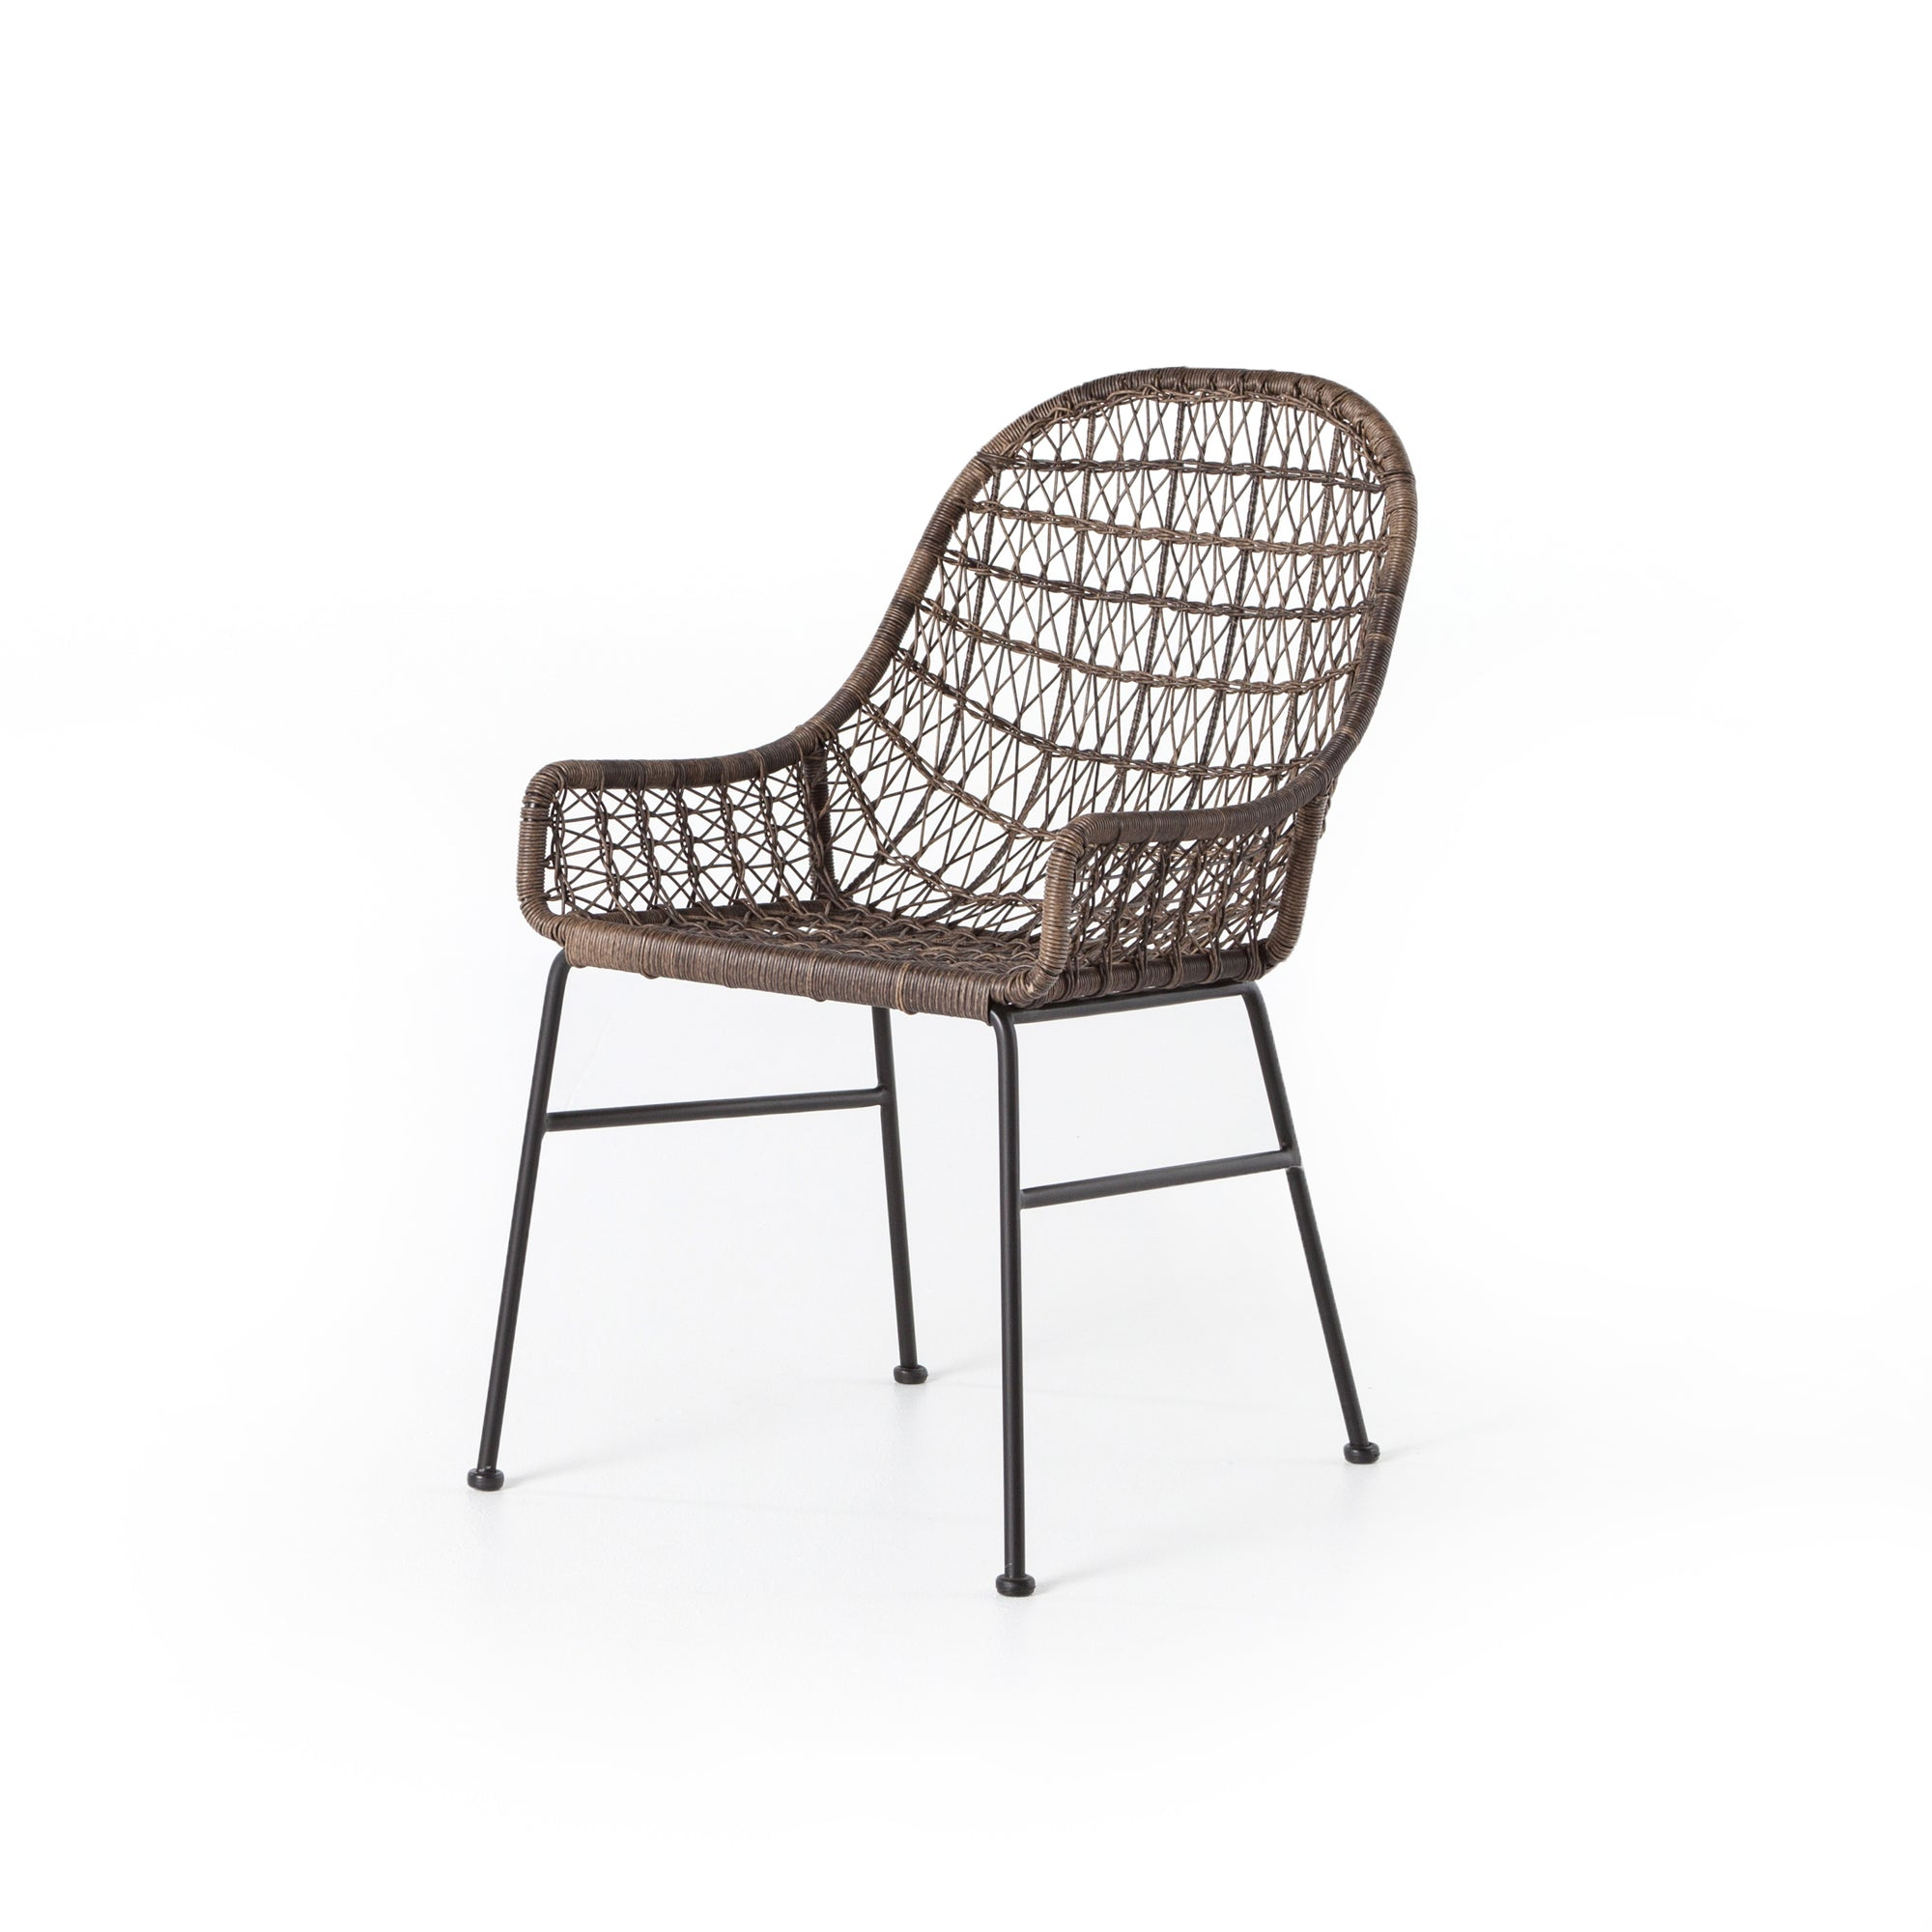 Bandera Outdoor Dining Chair Low Arm - Gre